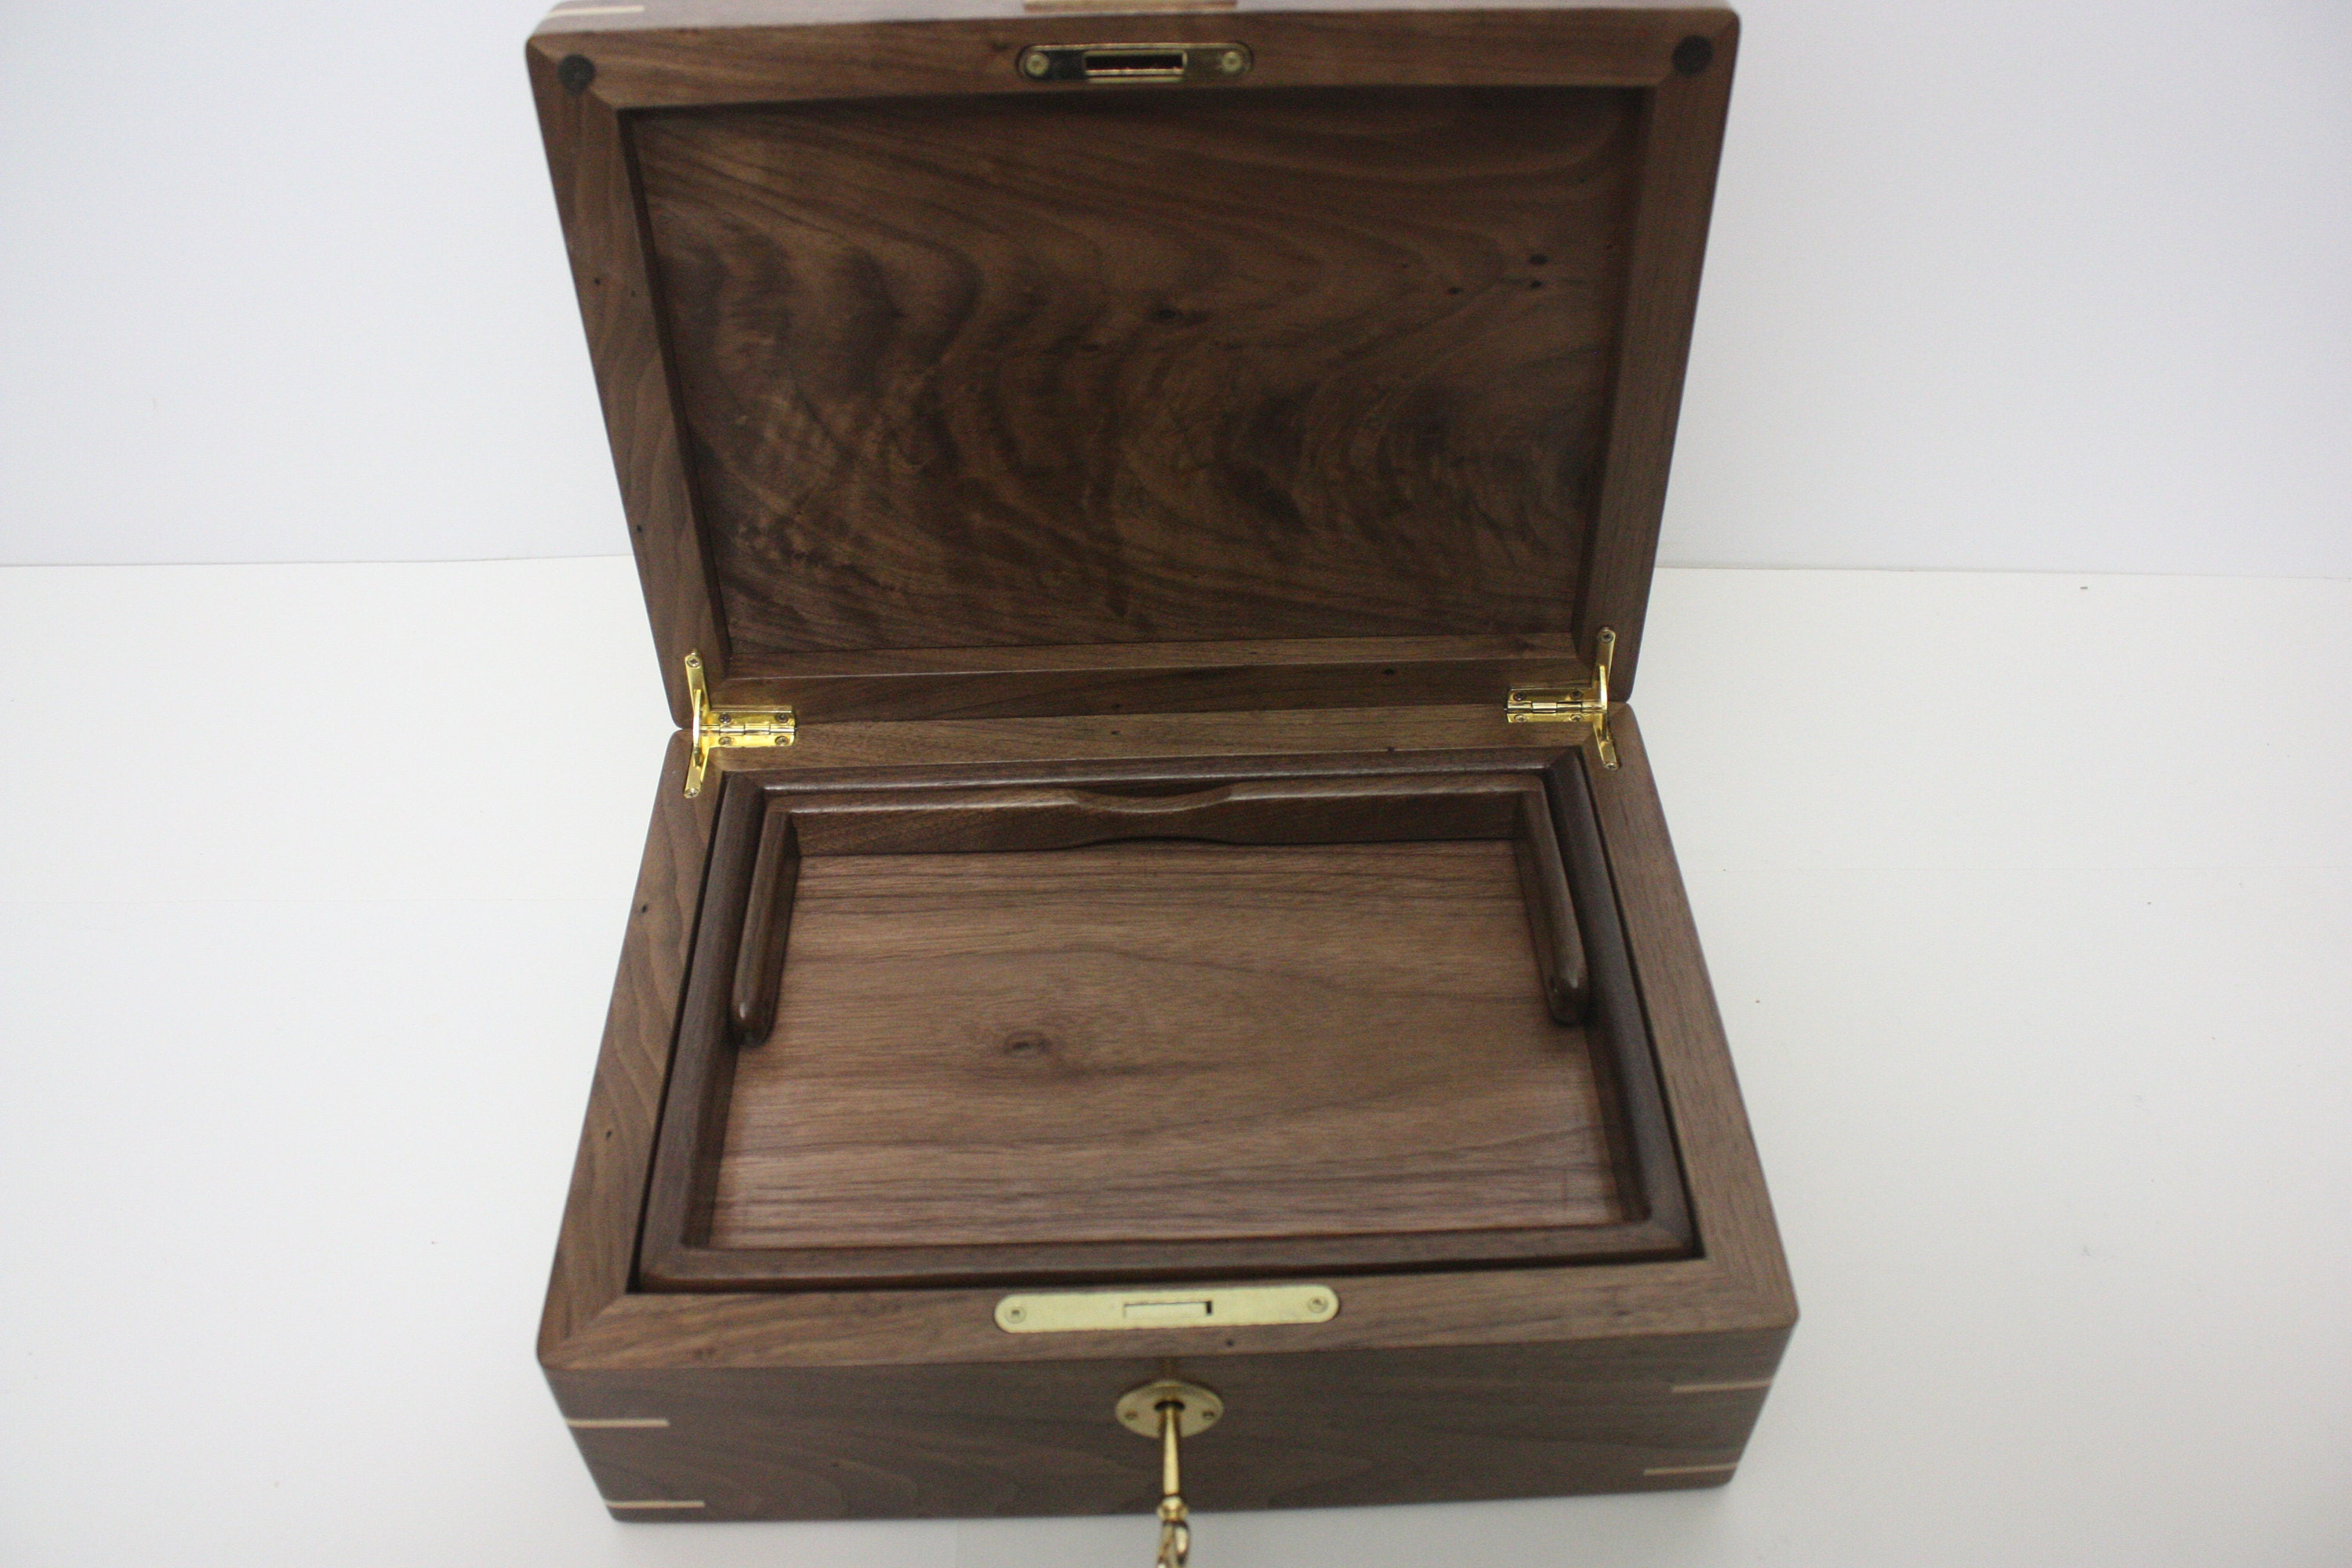 Locking Walnut Box with Lift Out Tray